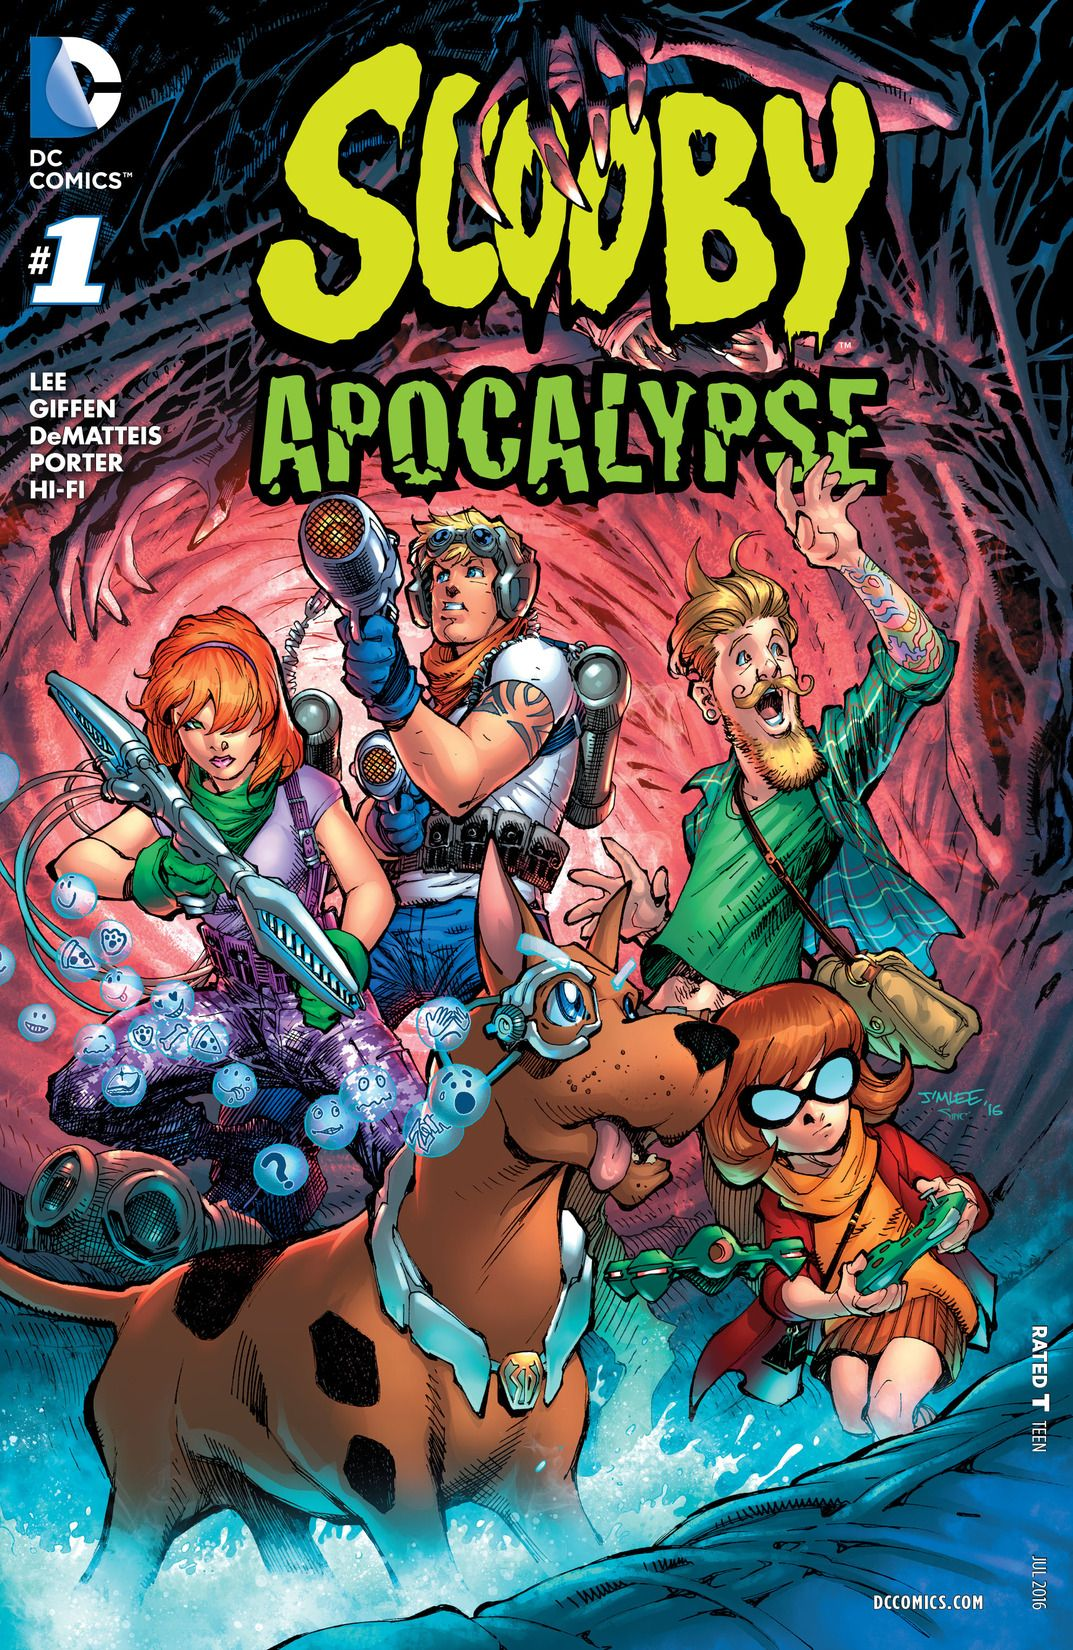 Scooby Apocalypse Vol 1 1